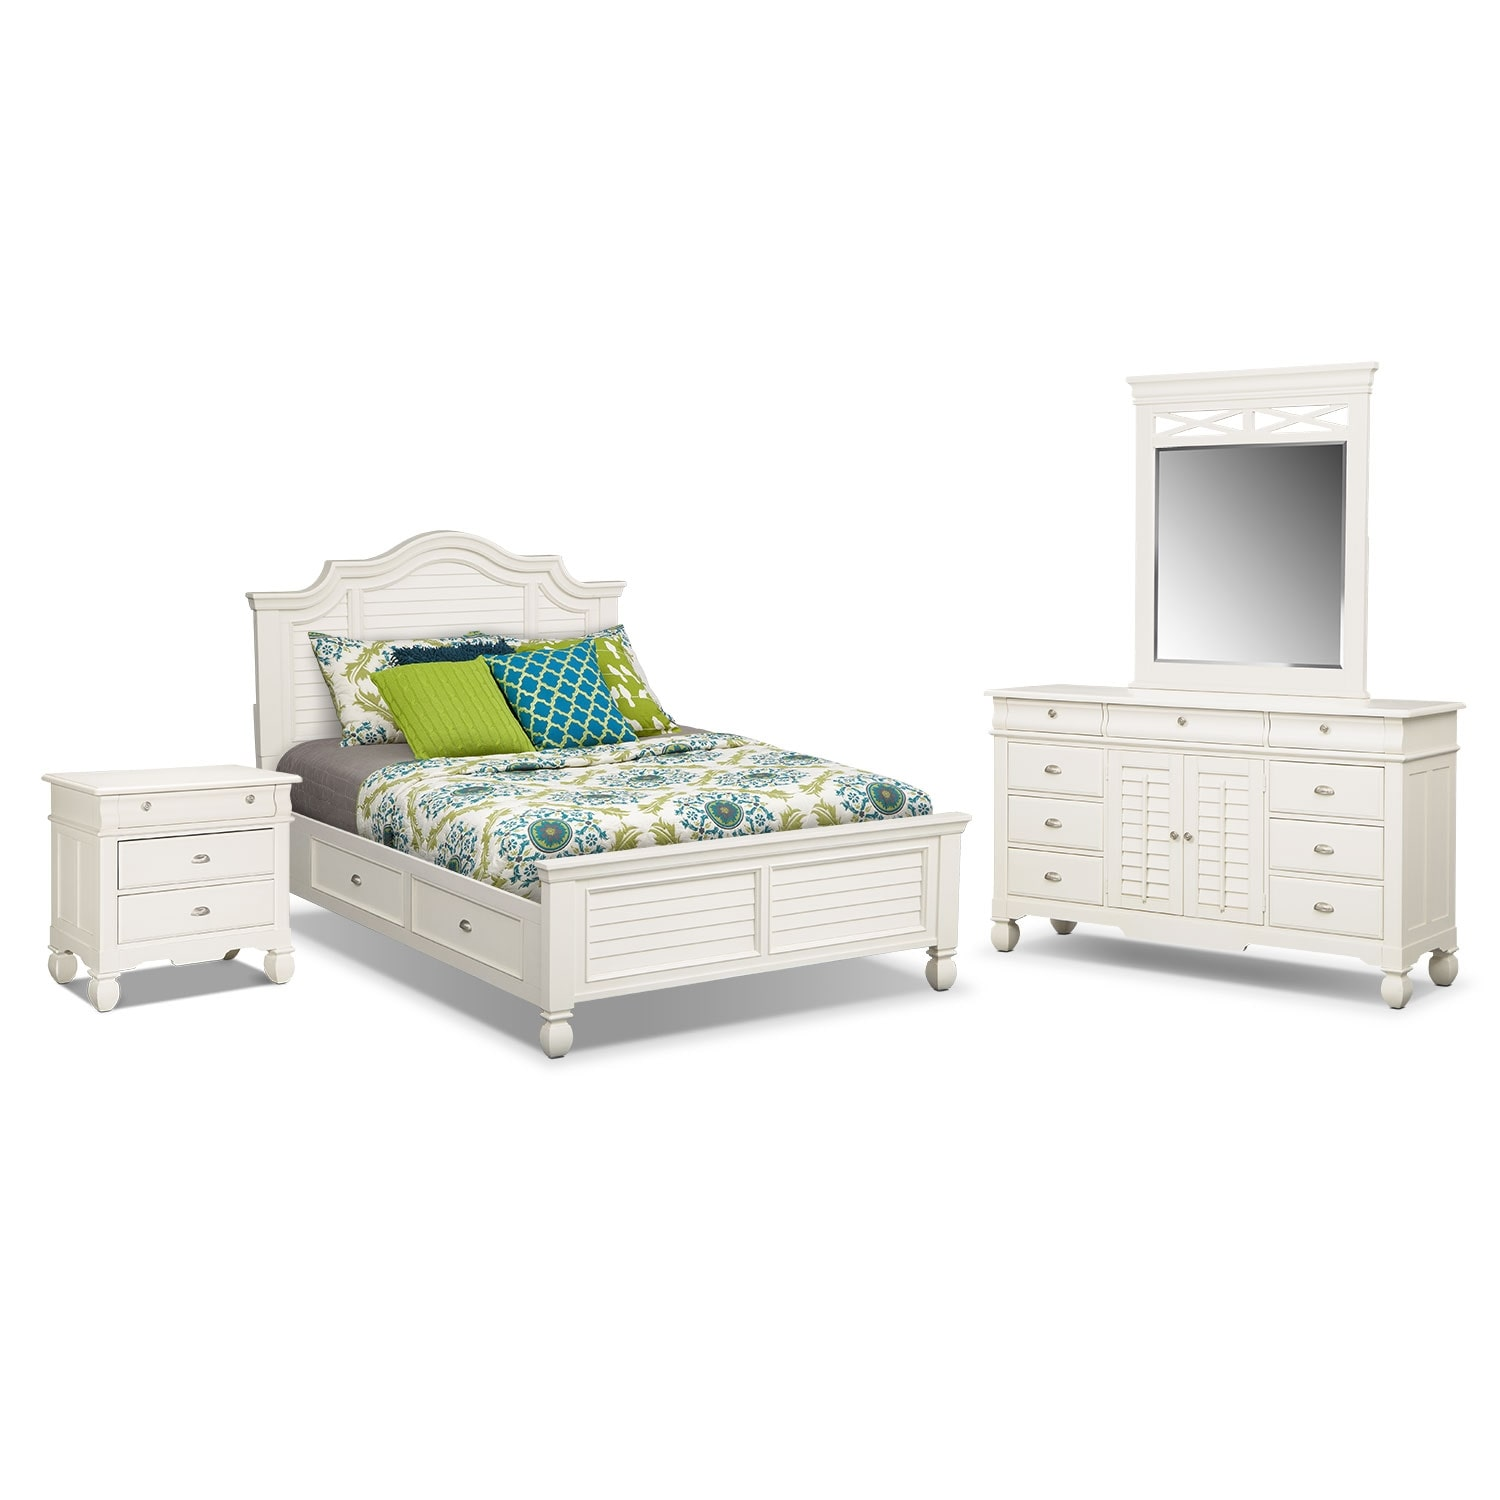 Plantation Cove 6-Piece King Storage Bedroom Set - White